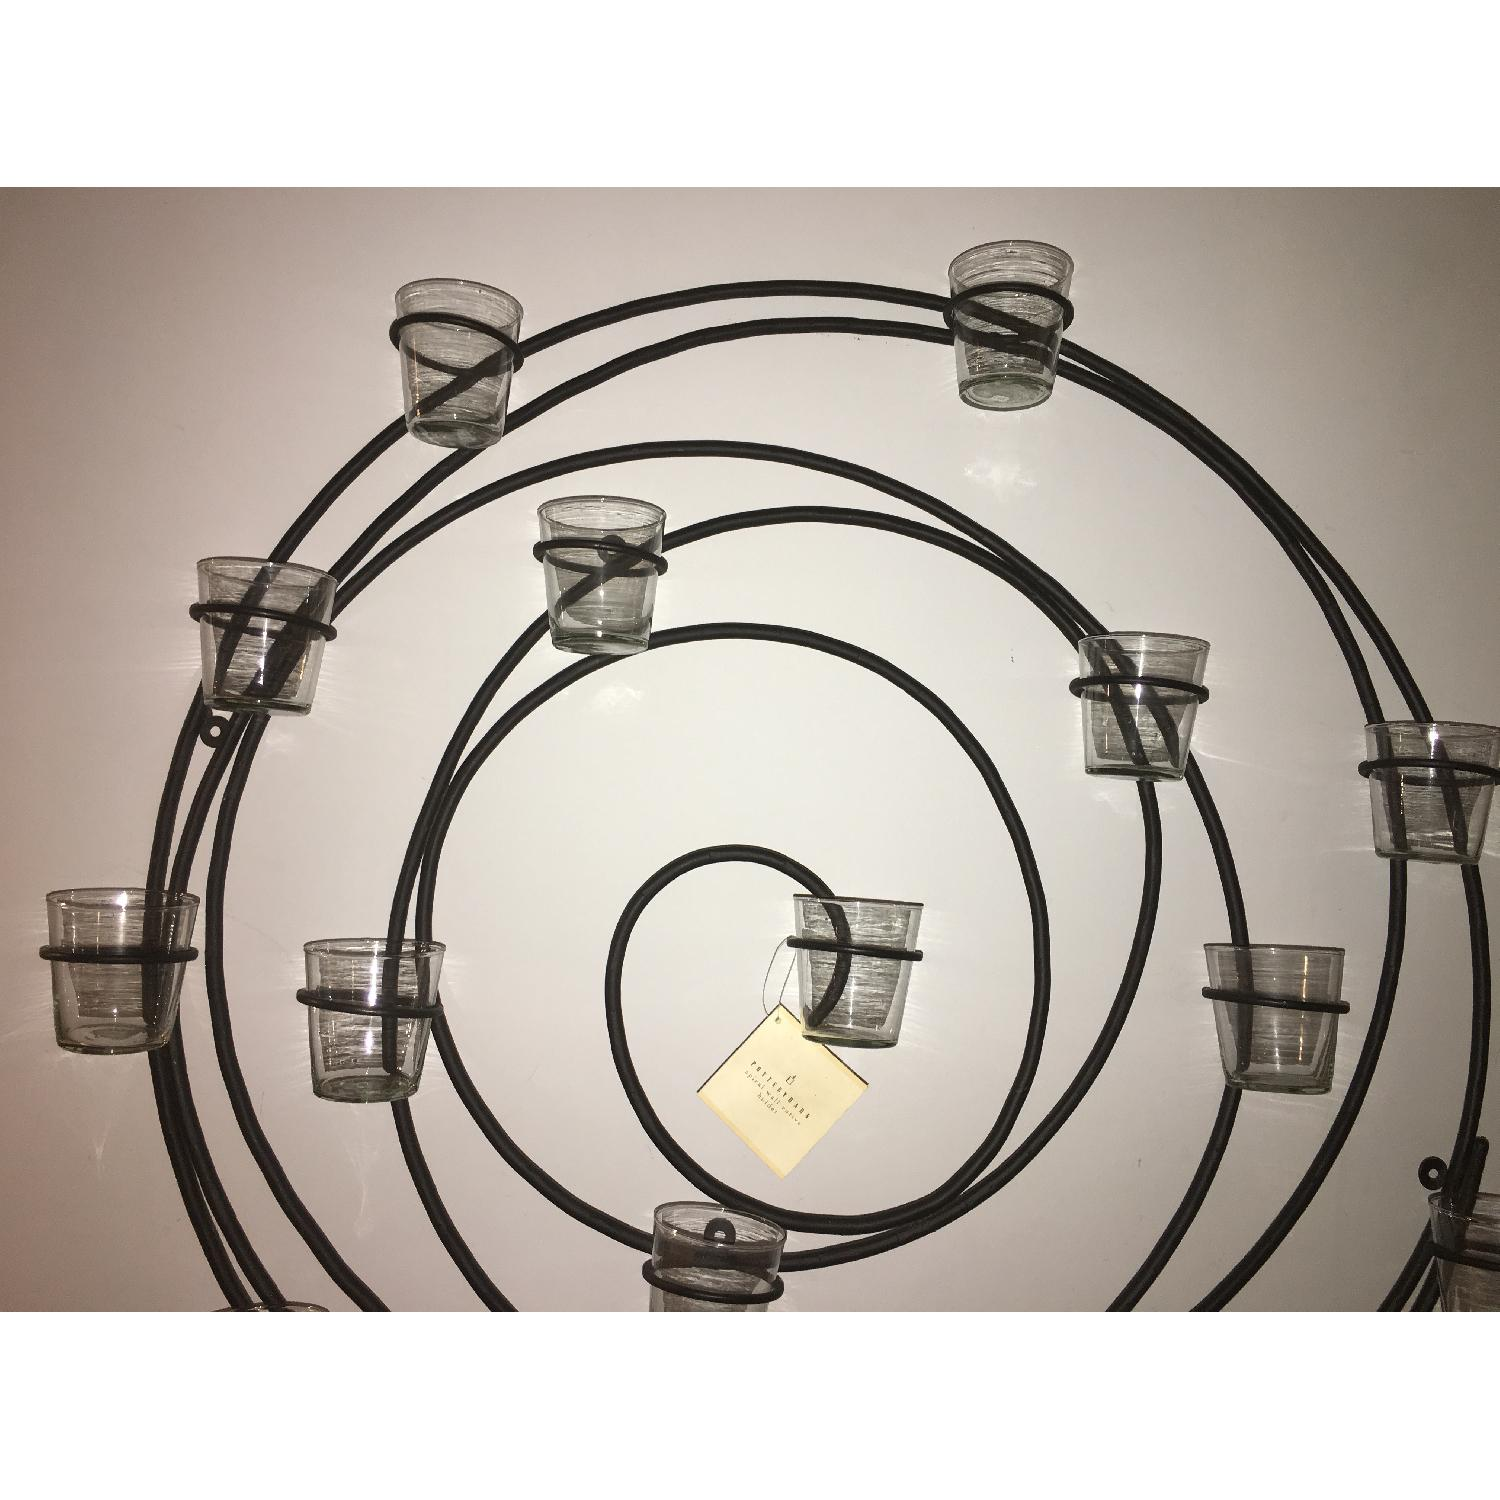 Pottery Barn Wrought Iron Spiral Wall Mount 16 Votive Candle Holder - image-3